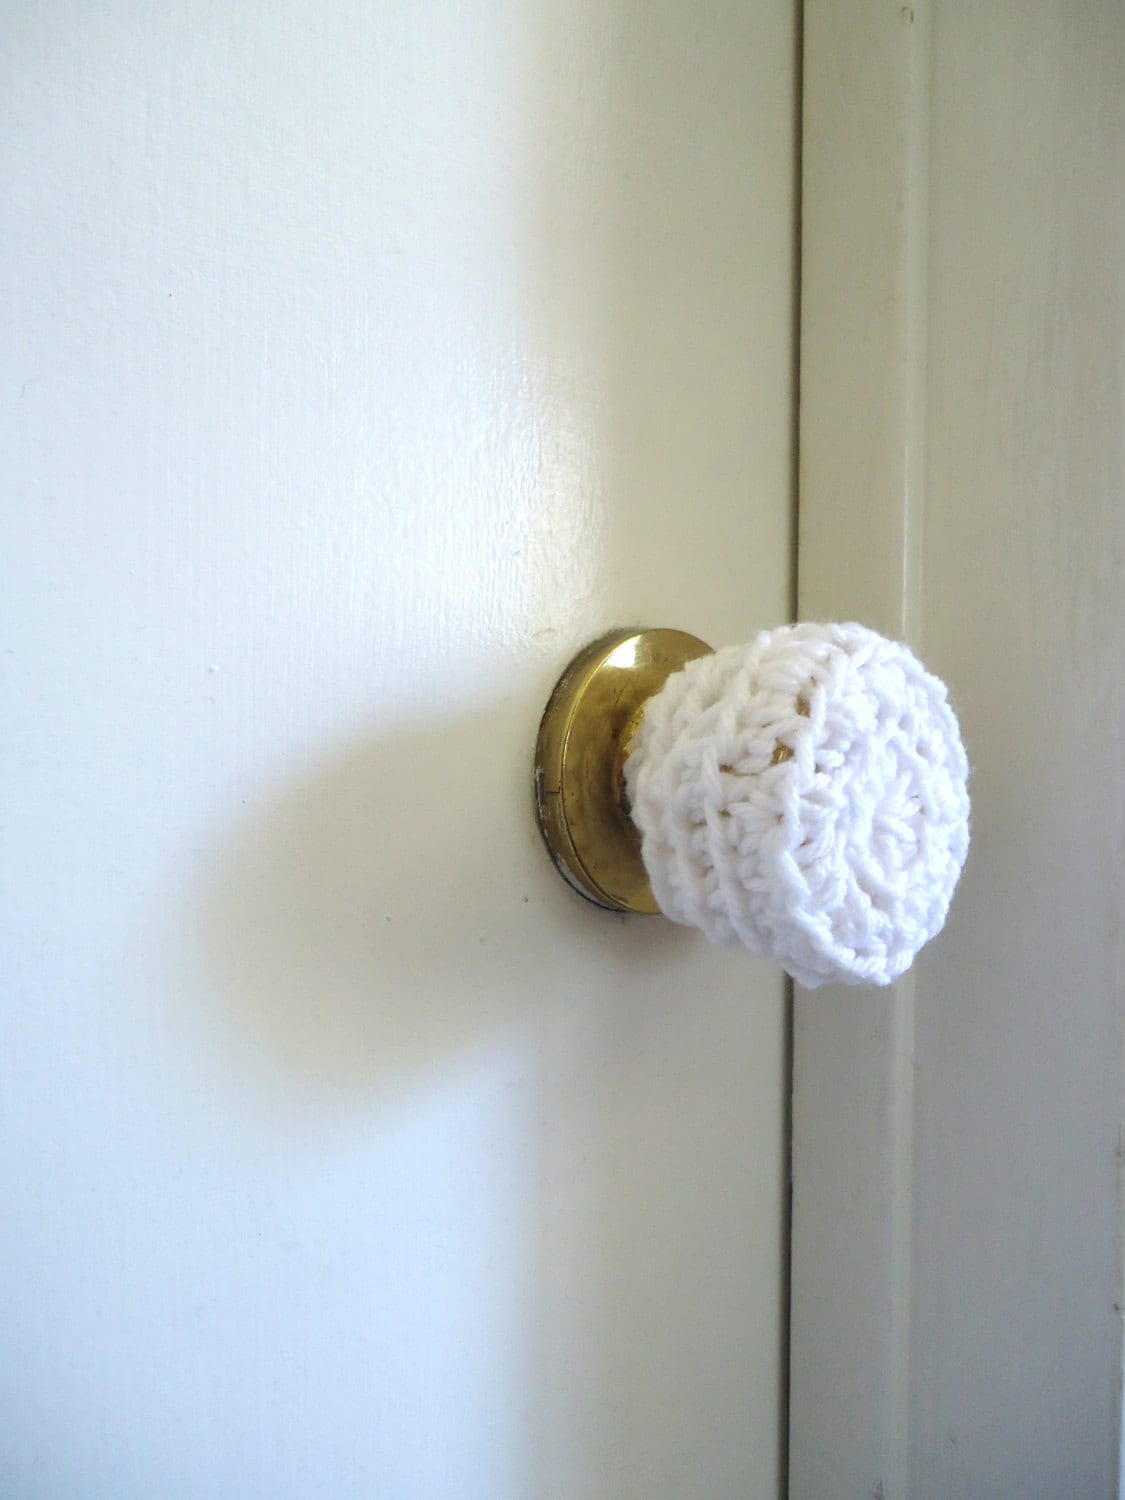 Door Knob Safety Covers : Crochet door knob cover child safety